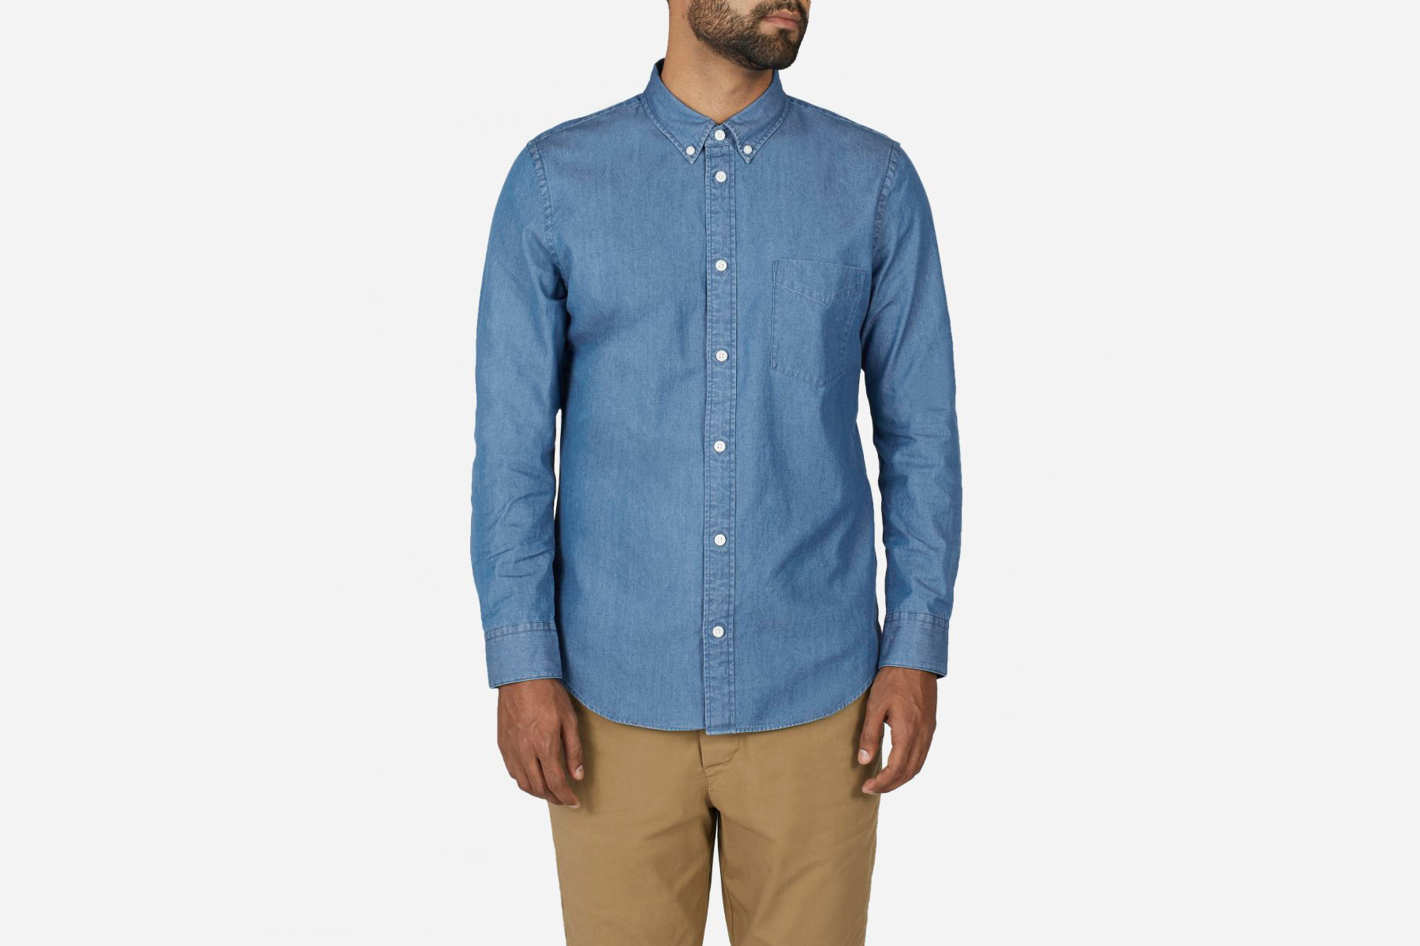 Everlane Denim Long-Sleeve Shirt